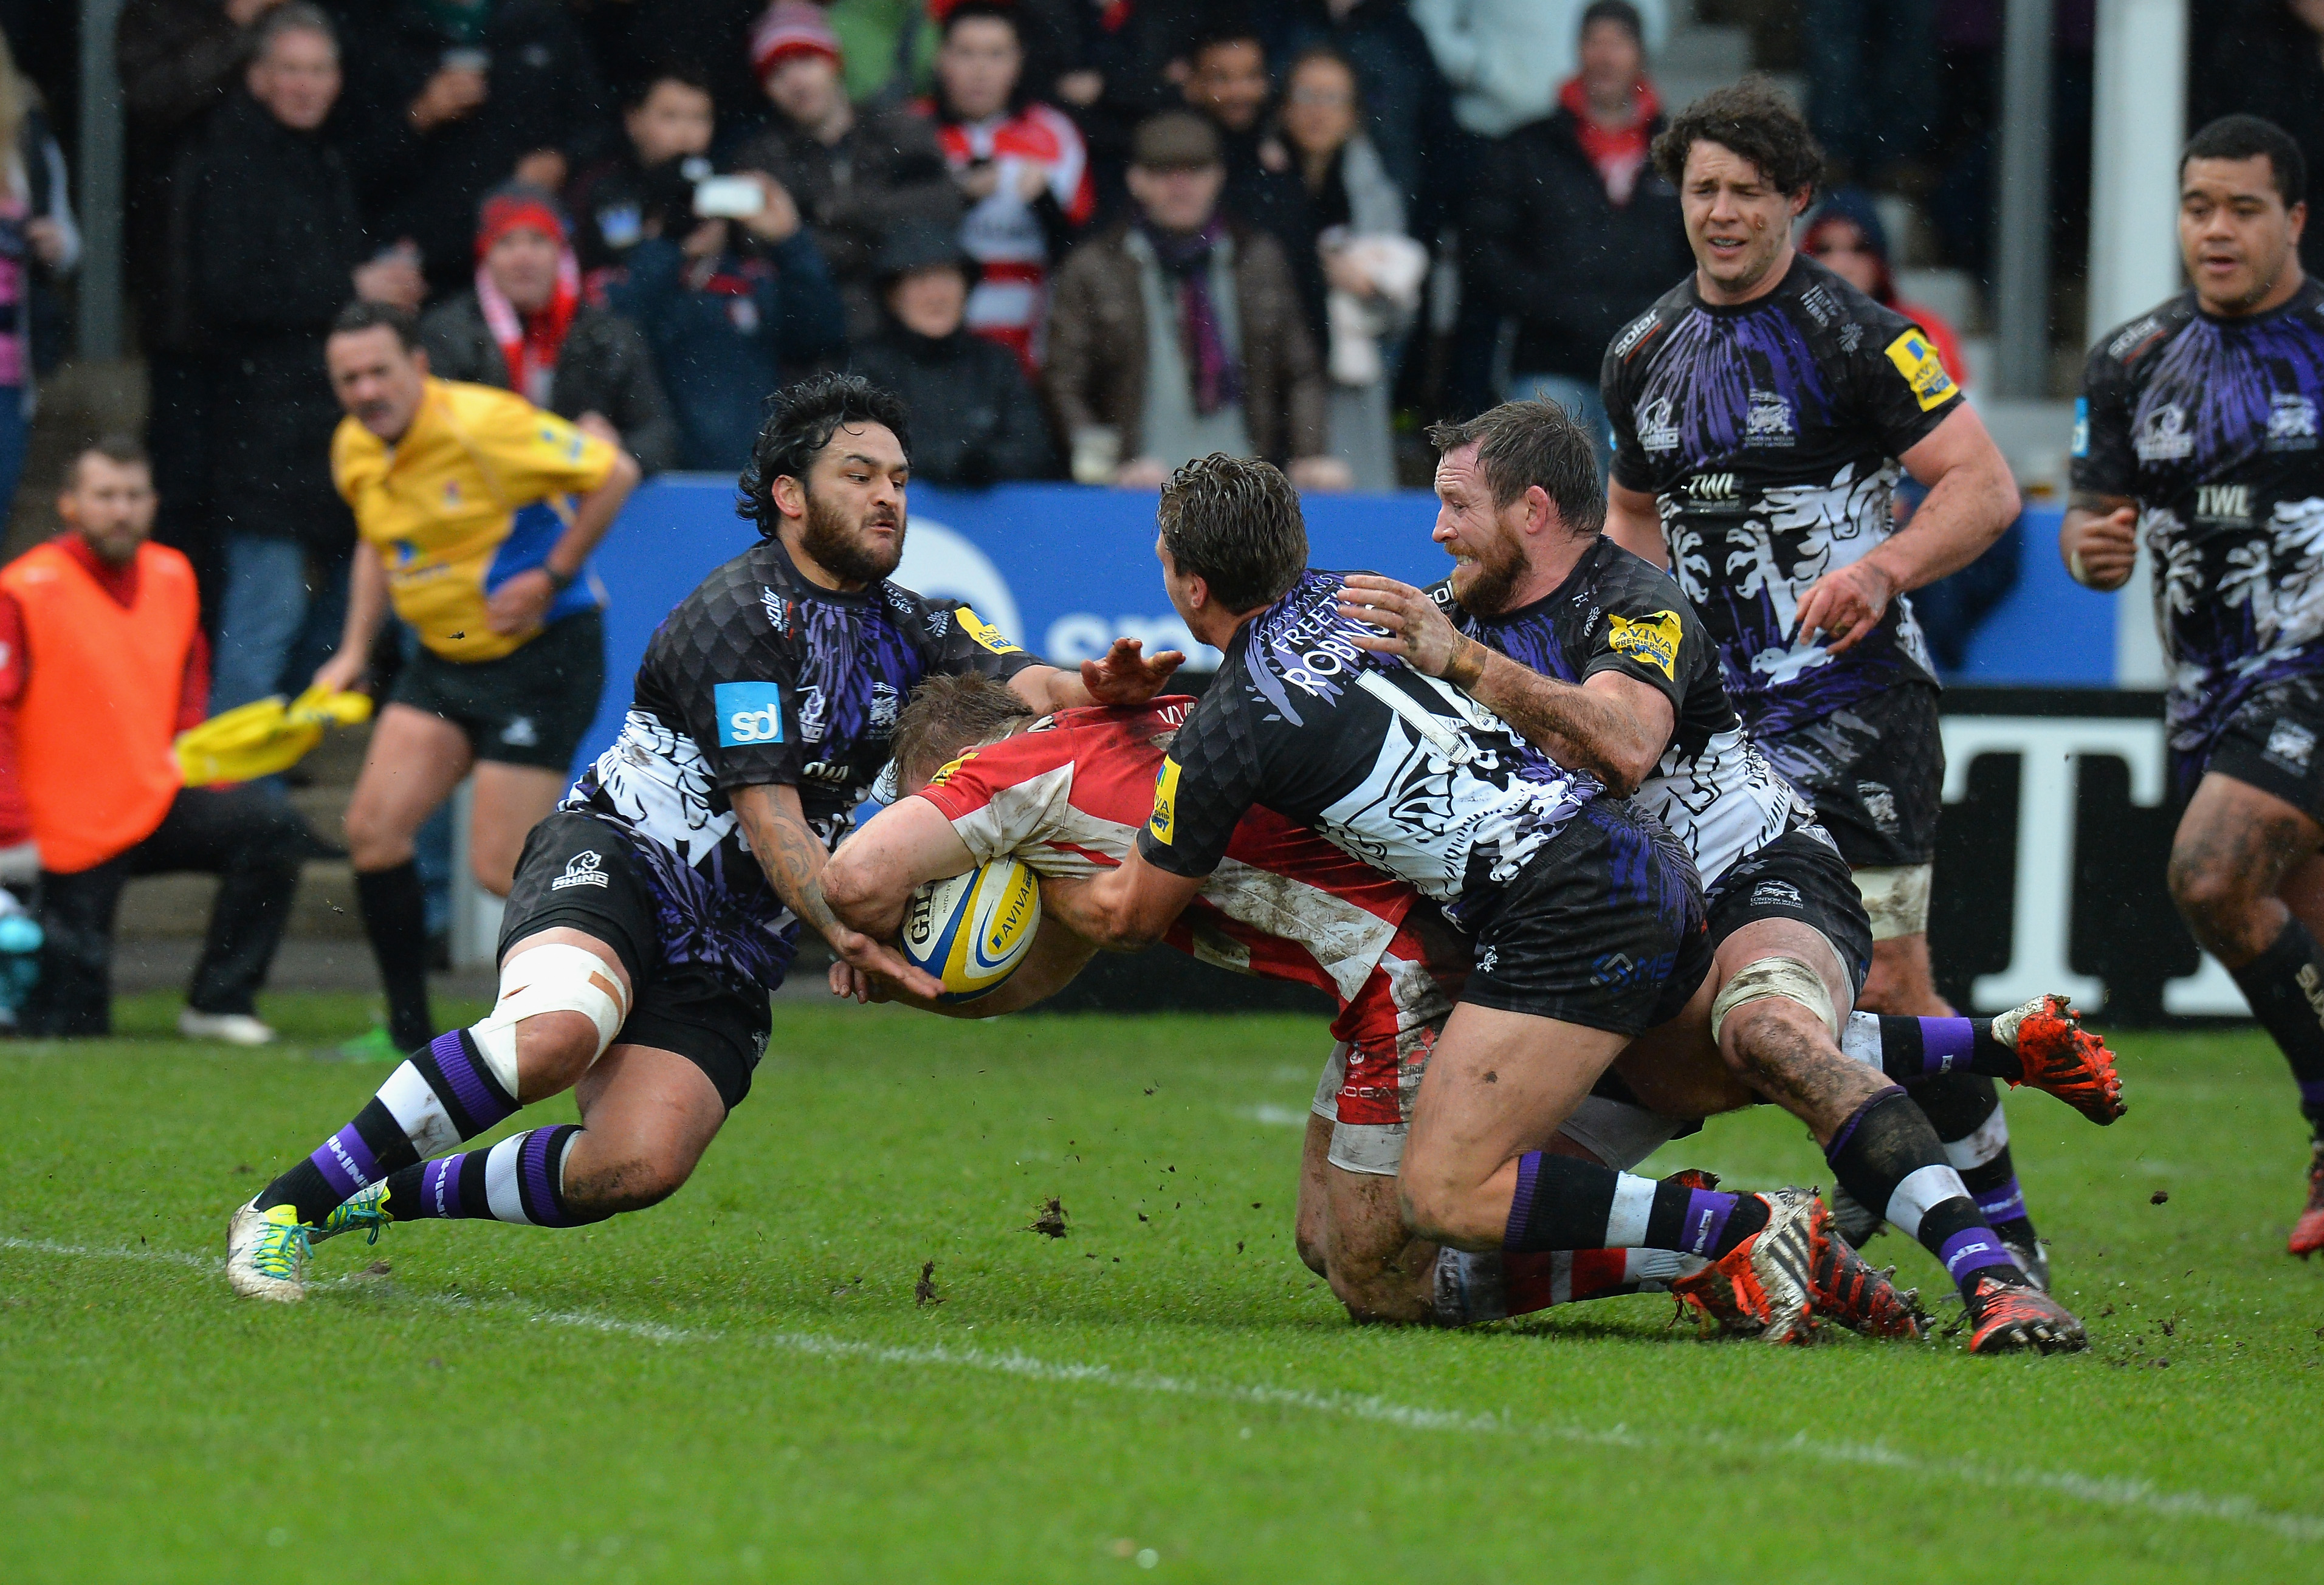 xxxx of Gloucester Rugby is tackled by xxxx of London Welsh during the Aviva Premiership match between Gloucester Rugby and London Welsh at Kingsholm Stadium on February 21, 2015 in Gloucester, England.